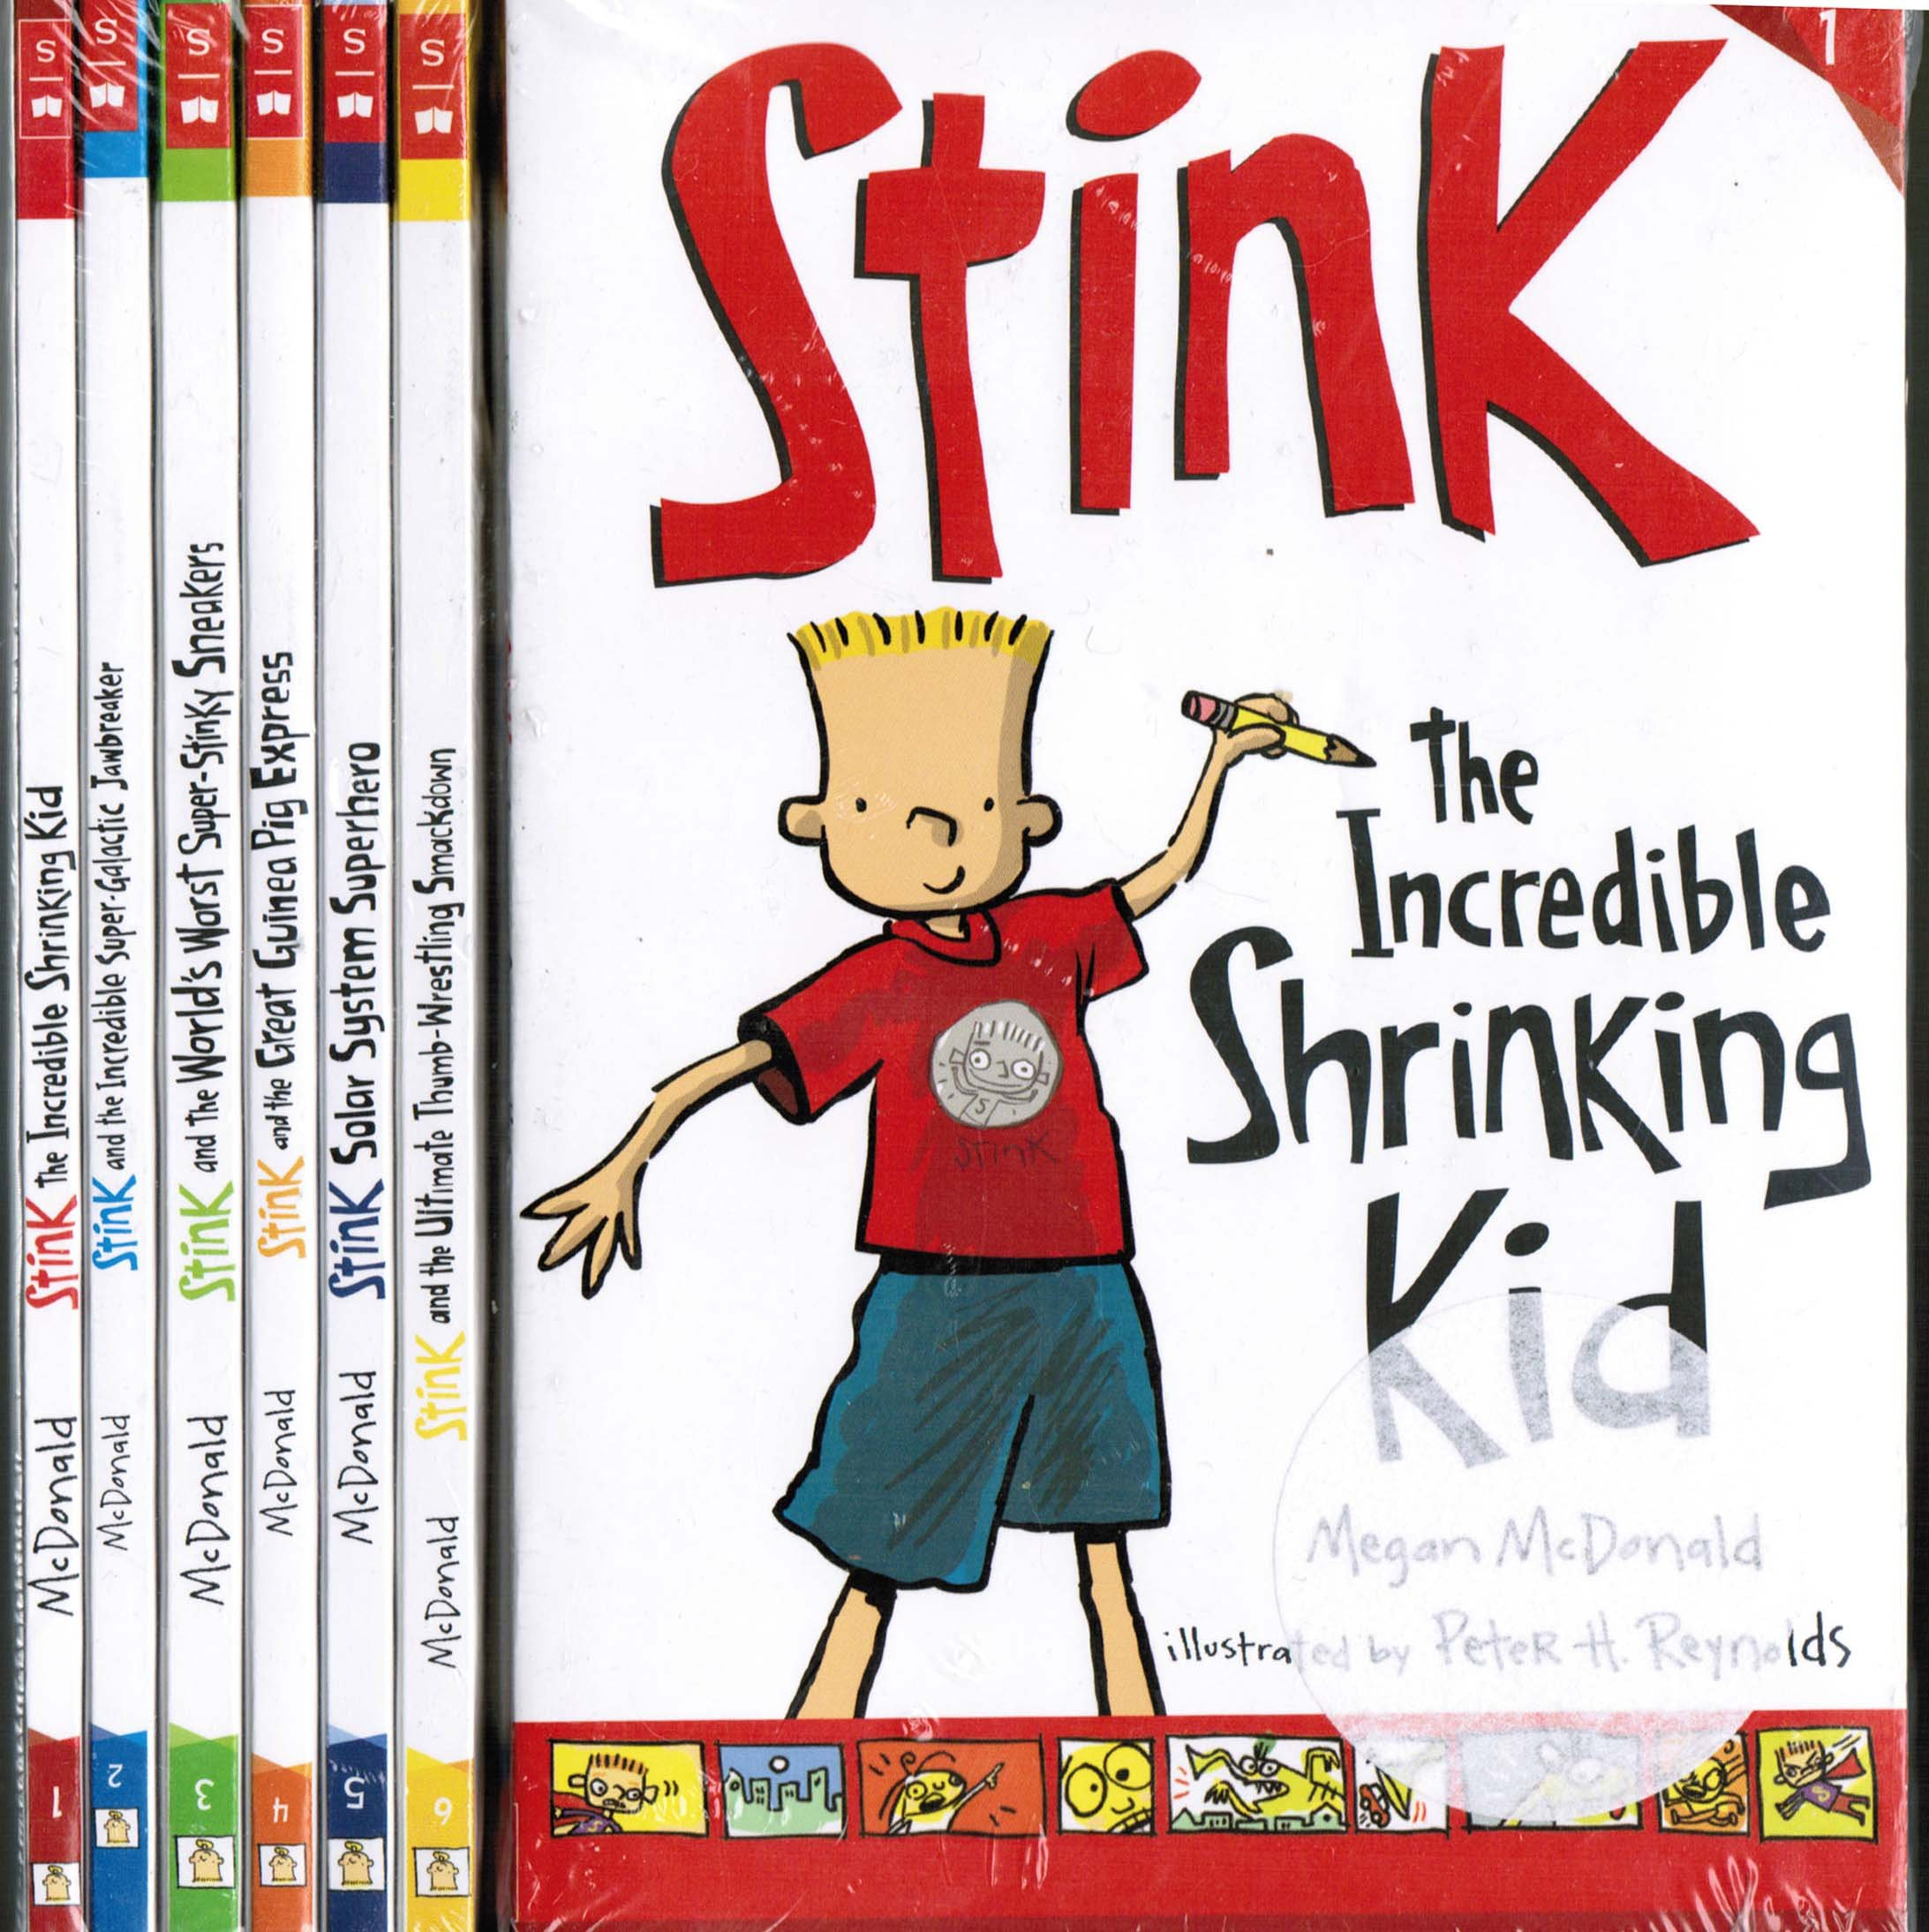 Download Stink 6 Book Set: Incredible Shrinking Kid / Super-galactic Jawbreaker / World's Worst Super-stinky Sneakers / Great Guinea PIG Express / Solar System Superhero / the Ultimate Thumb-wrestling Smackdown PDF